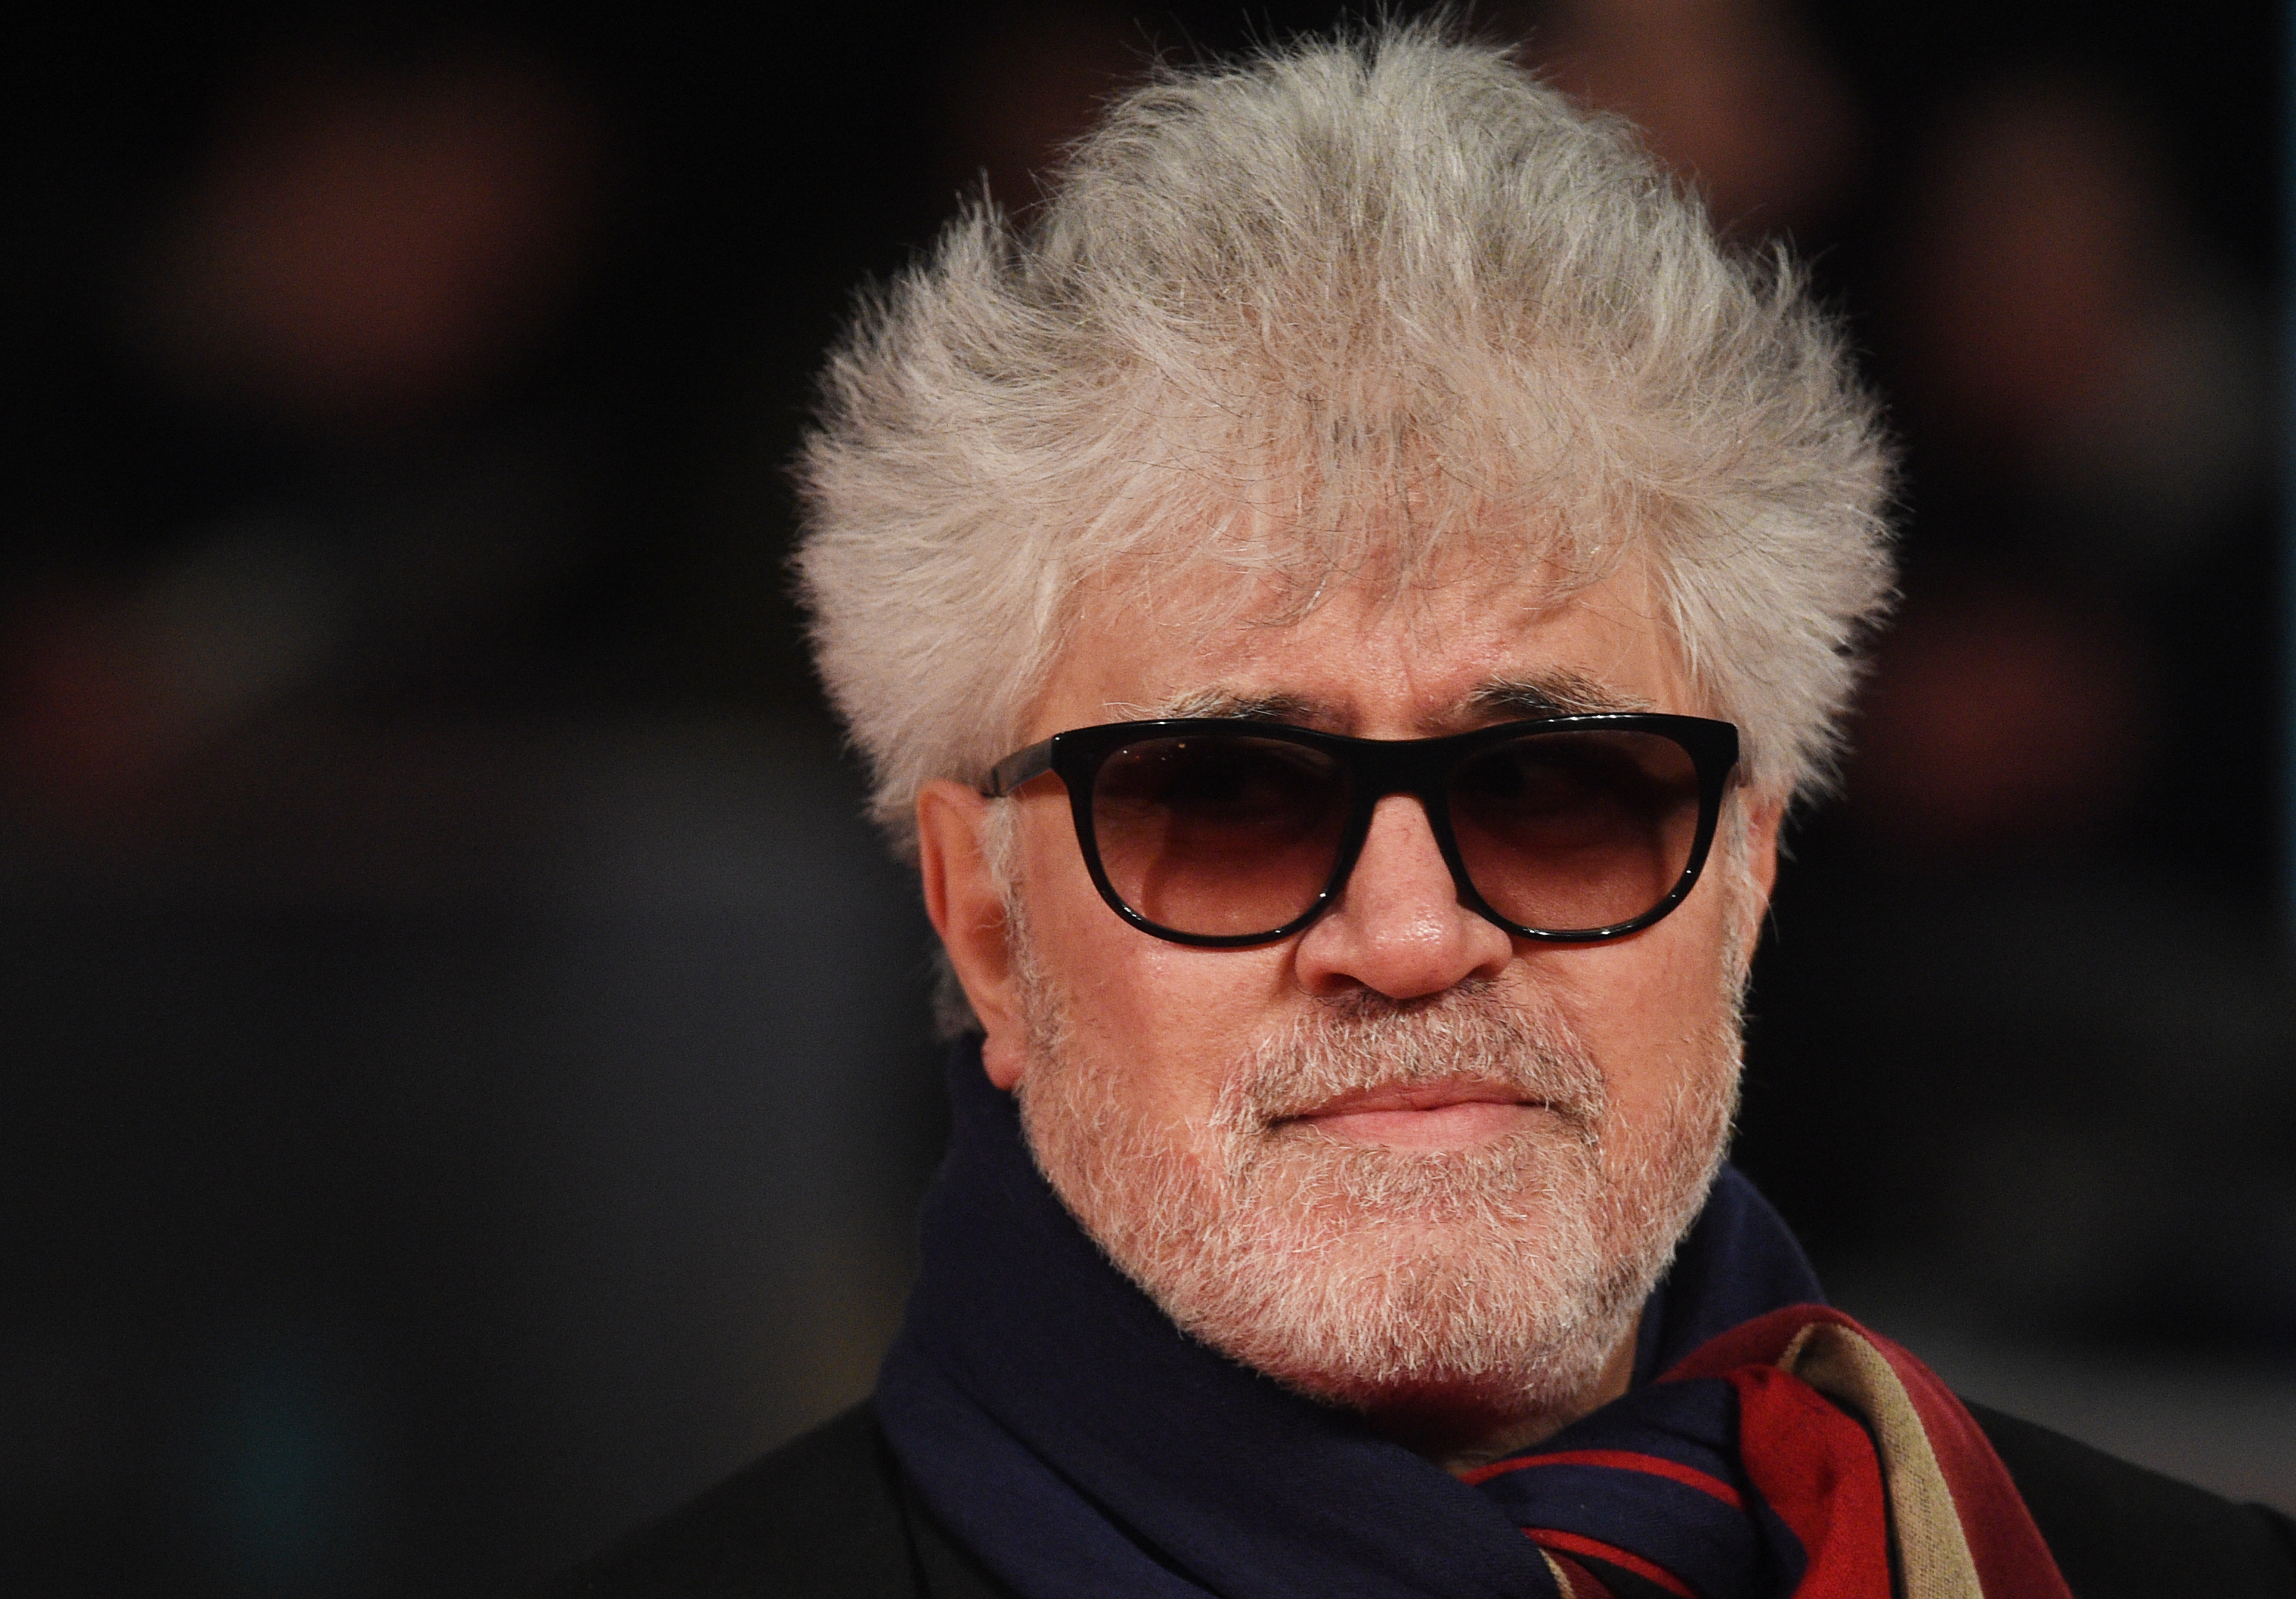 epa05789311 Spanish director Pedro Almodovar arrives for the 70th annual British Academy Film Awards at the Royal Albert Hall in London, Britain, 12 February 2017. The ceremony is hosted by the British Academy of Film and Television Arts (BAFTA). EPA/FACUNDO ARRIZABALAGA